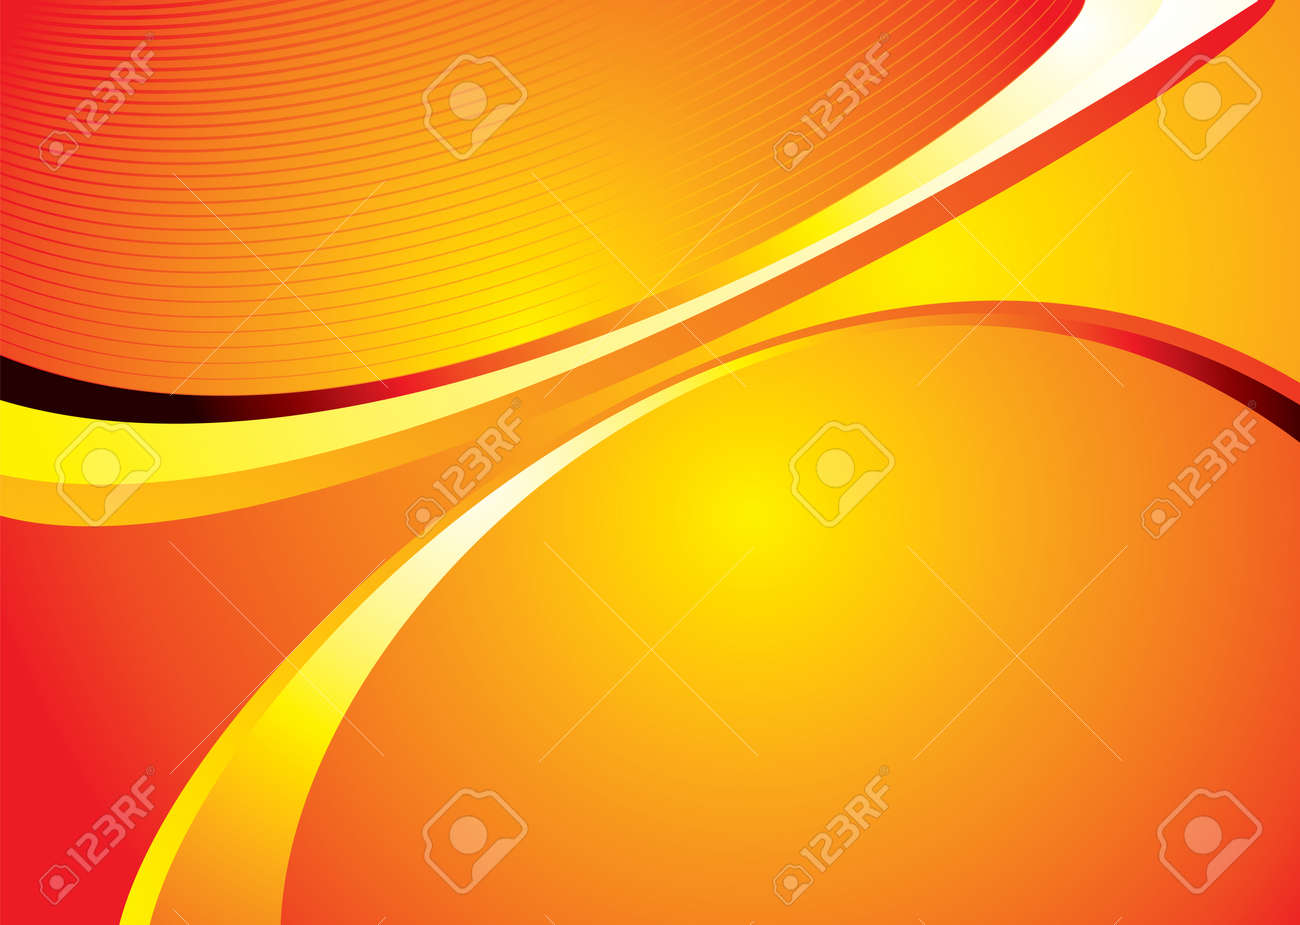 Abstract orange and yellow background with copy space Stock Vector - 2595444